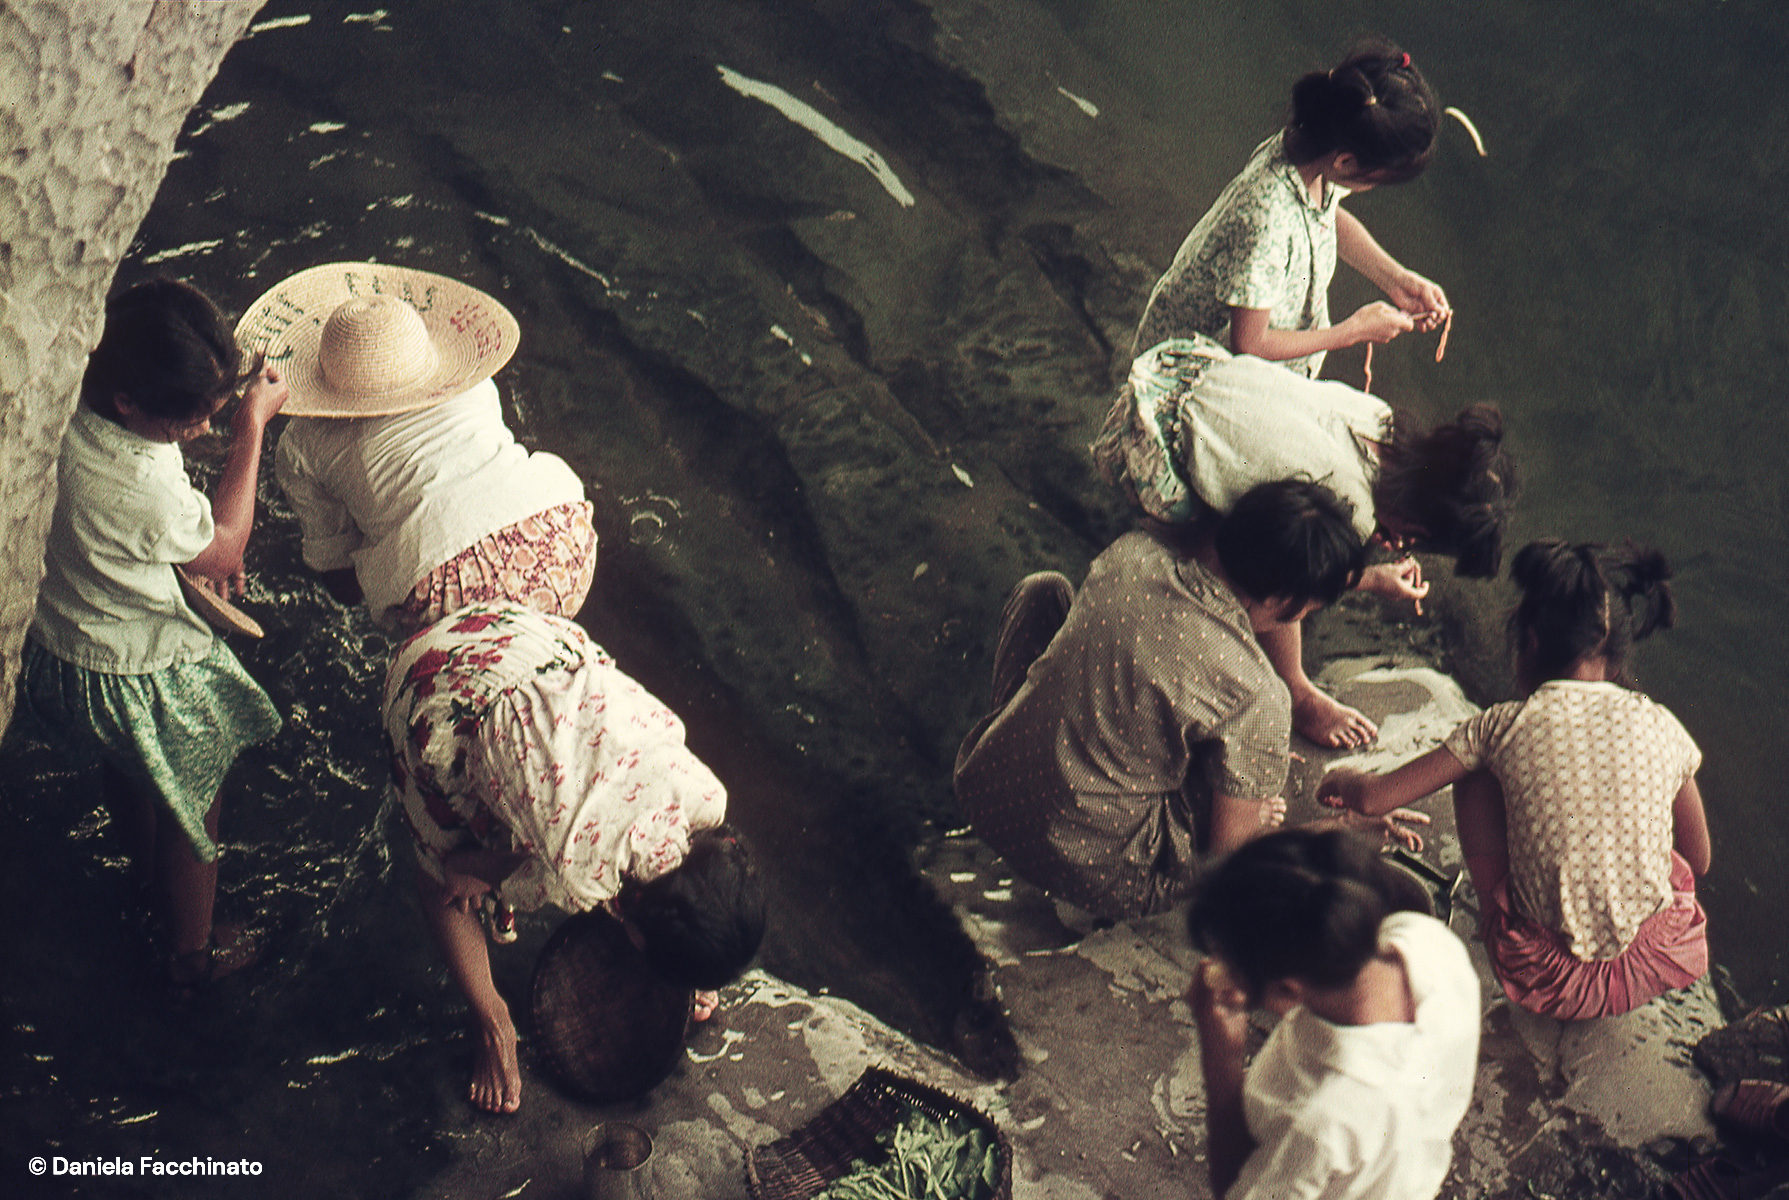 Guilin, Guanxi, China, 1976. Women wash food in the waters of the Li River